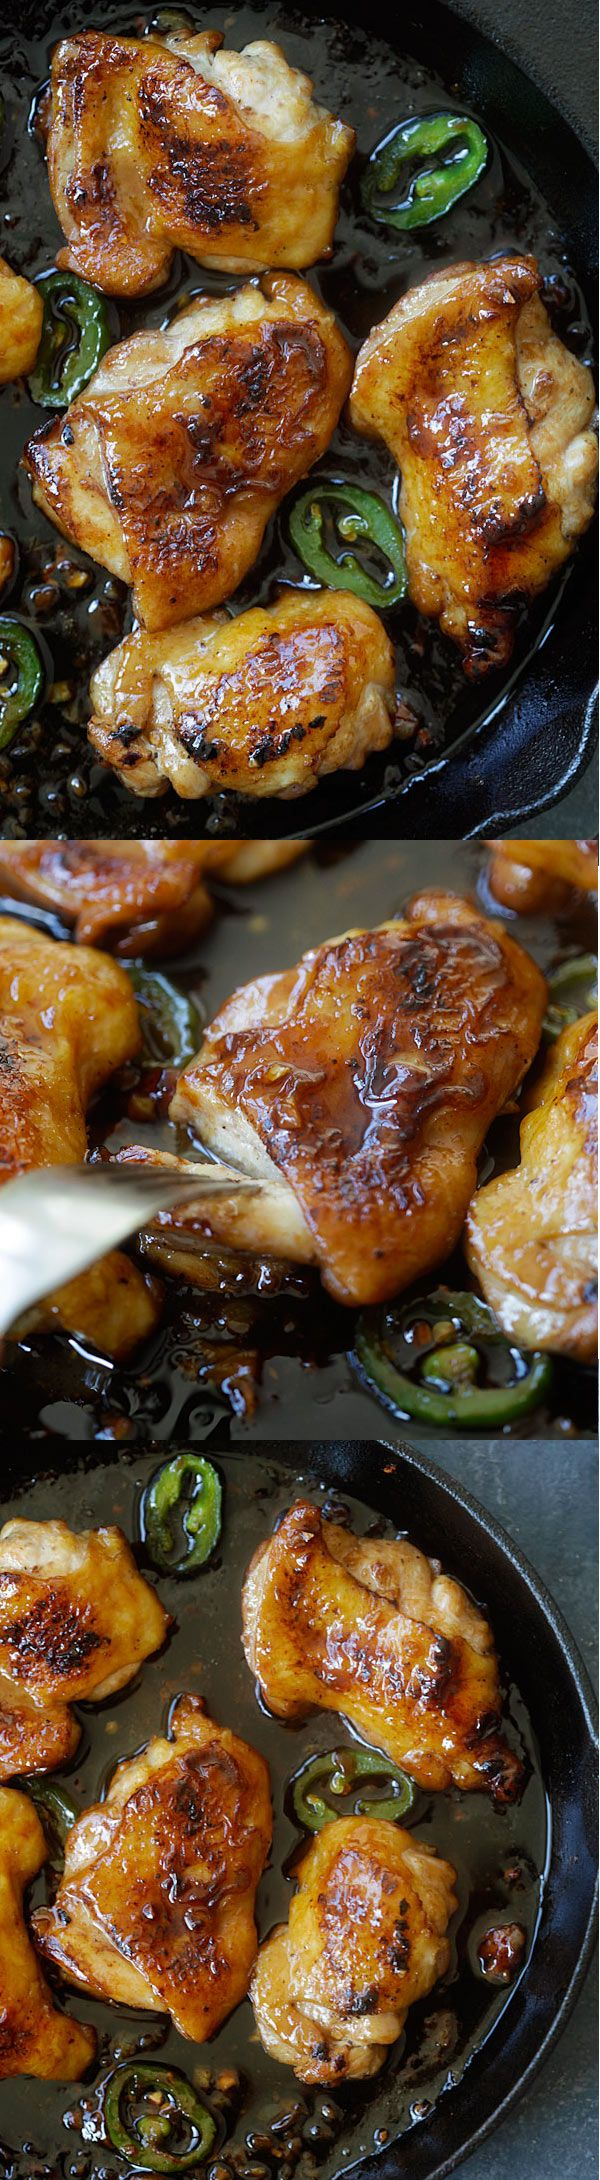 Caramel chicken – the easiest and most delicious Asian chicken dish ever with sticky, sweet and savory chicken. Dinner is done in 20 mins | rasamalaysia.com